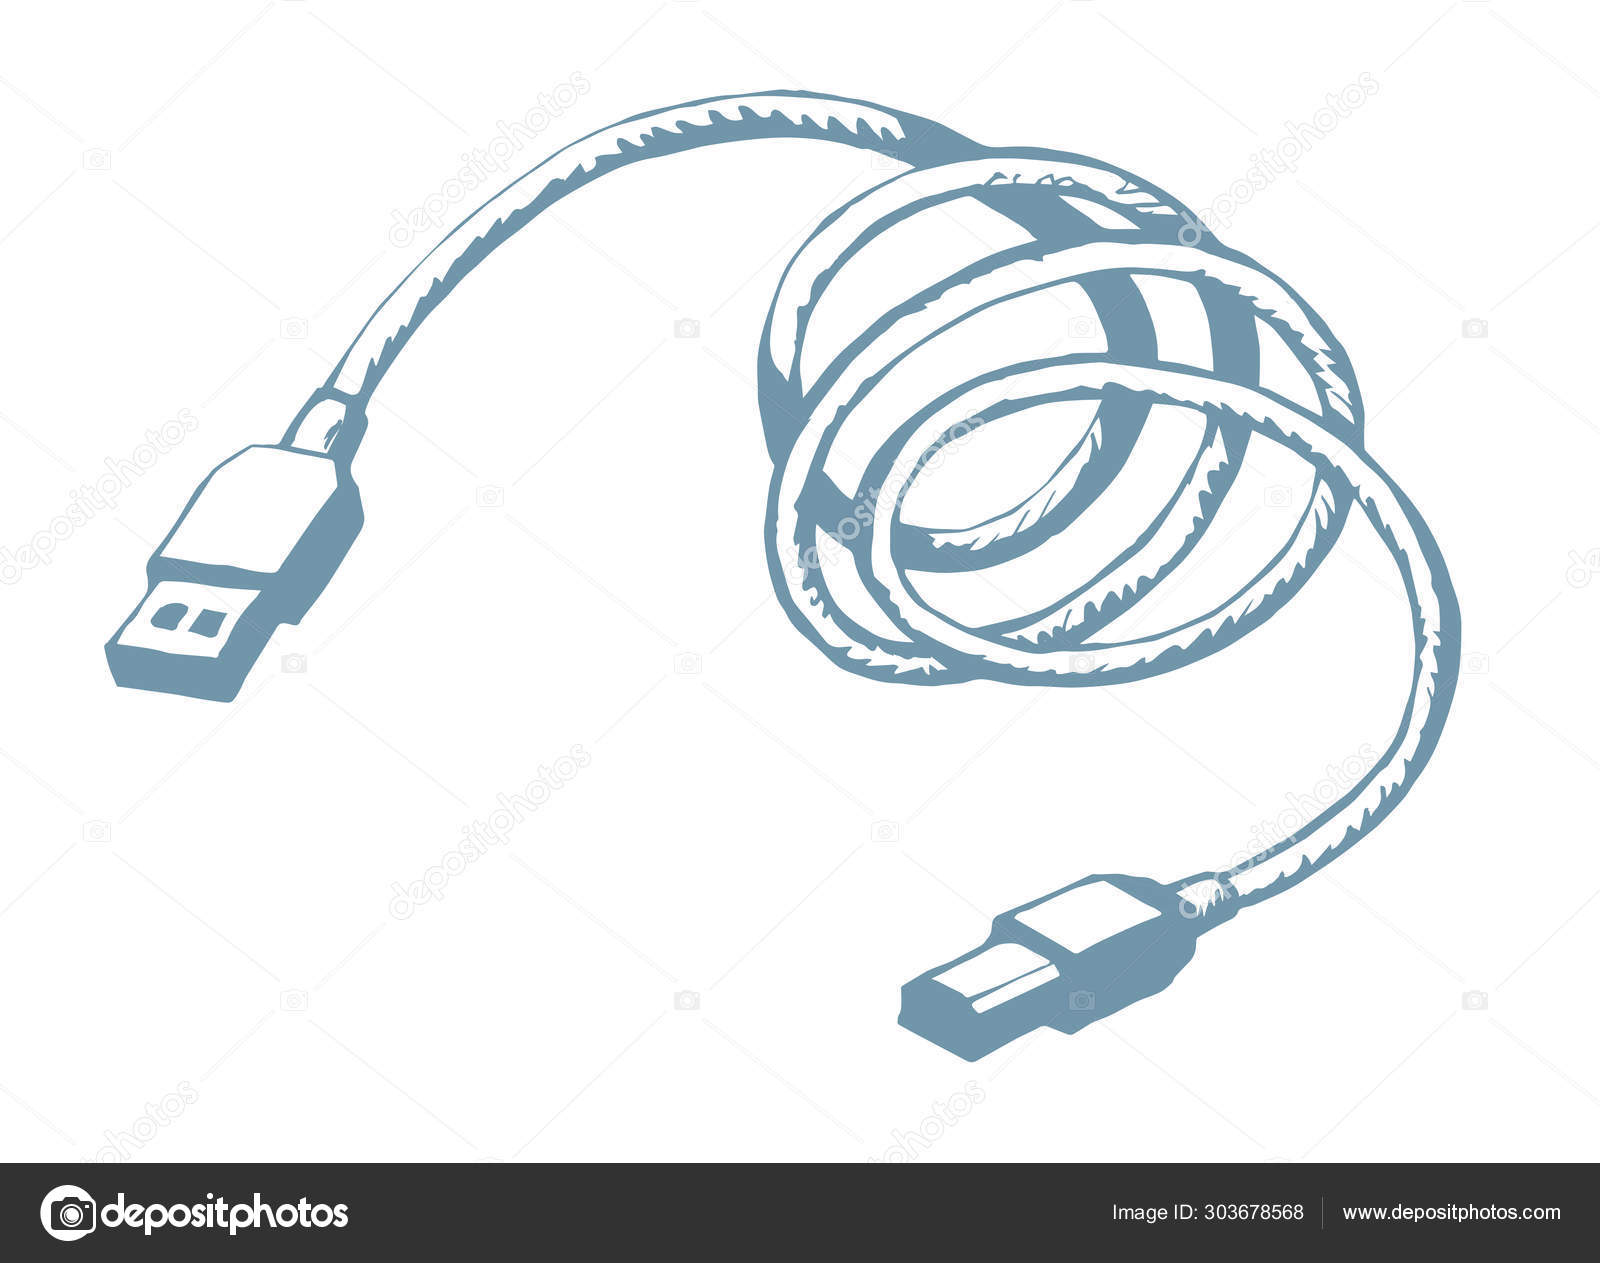 Cord For Charging The Phone Vector Drawing Stock Vector C Marinka 303678568